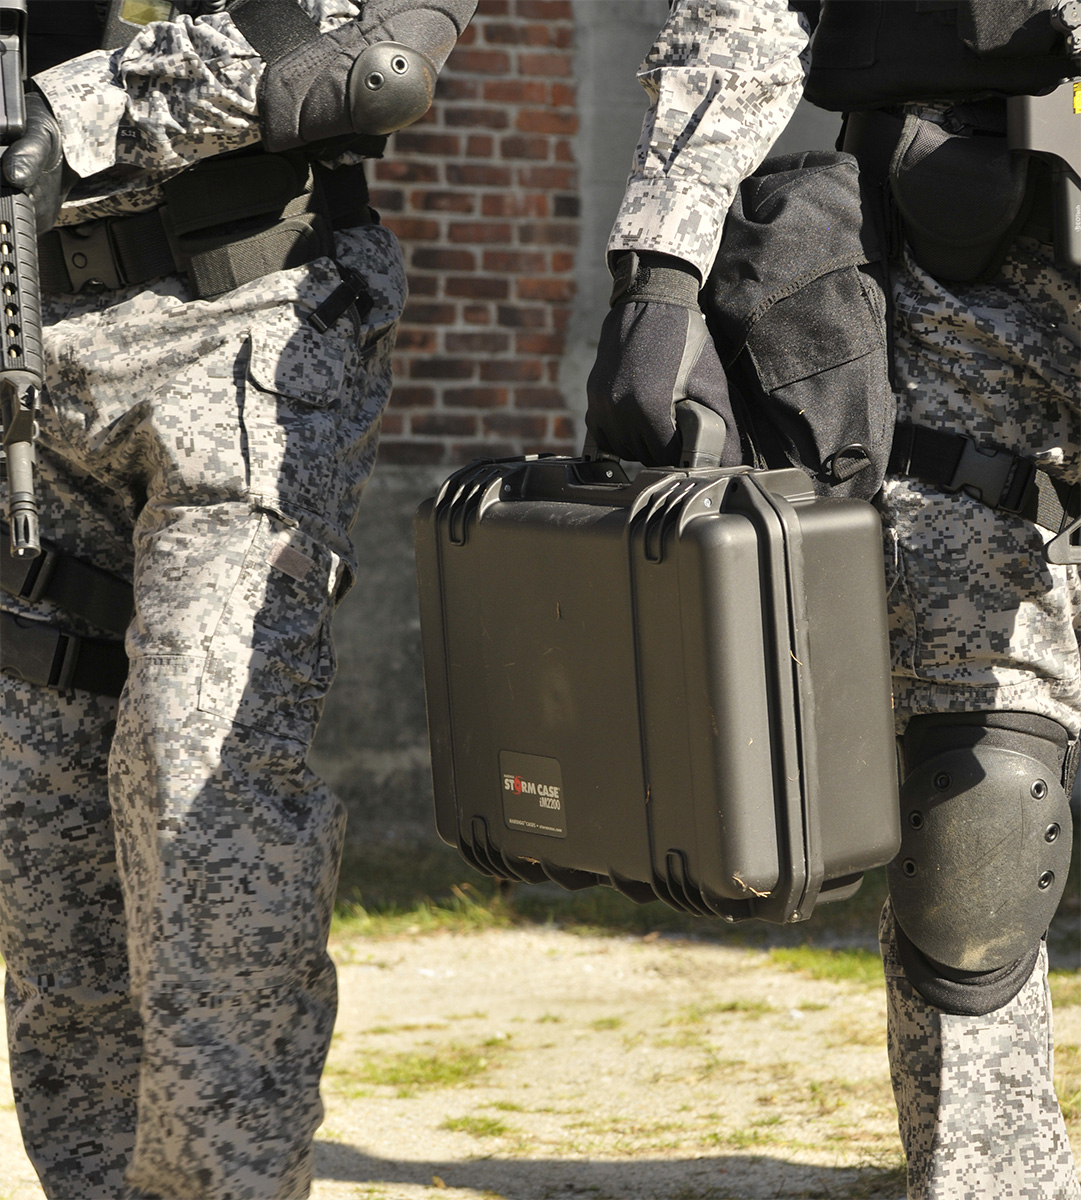 buy pelican storm im2200 shop swat tactical gear hardcase